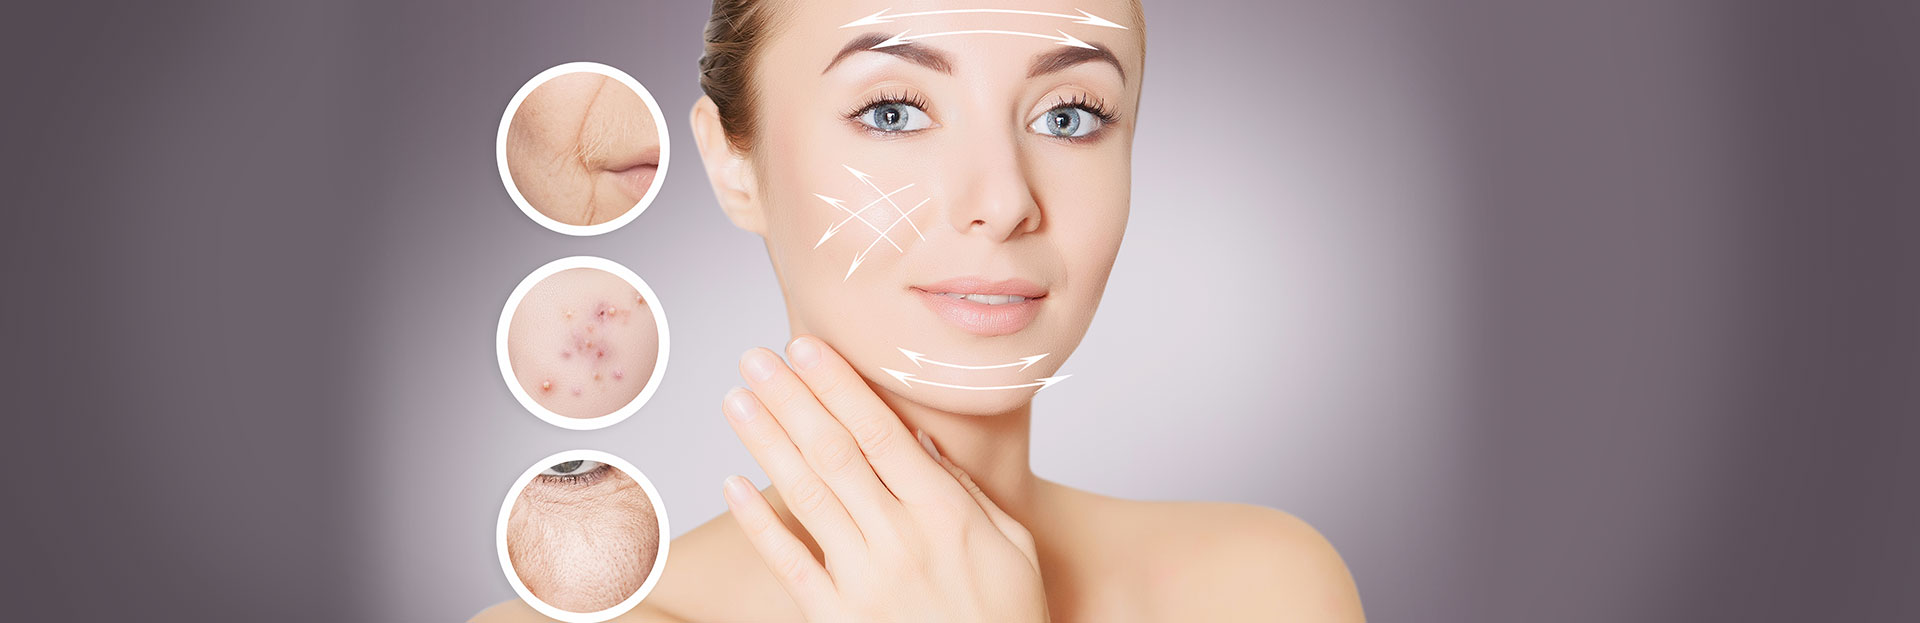 Laser Skin Care Treatments